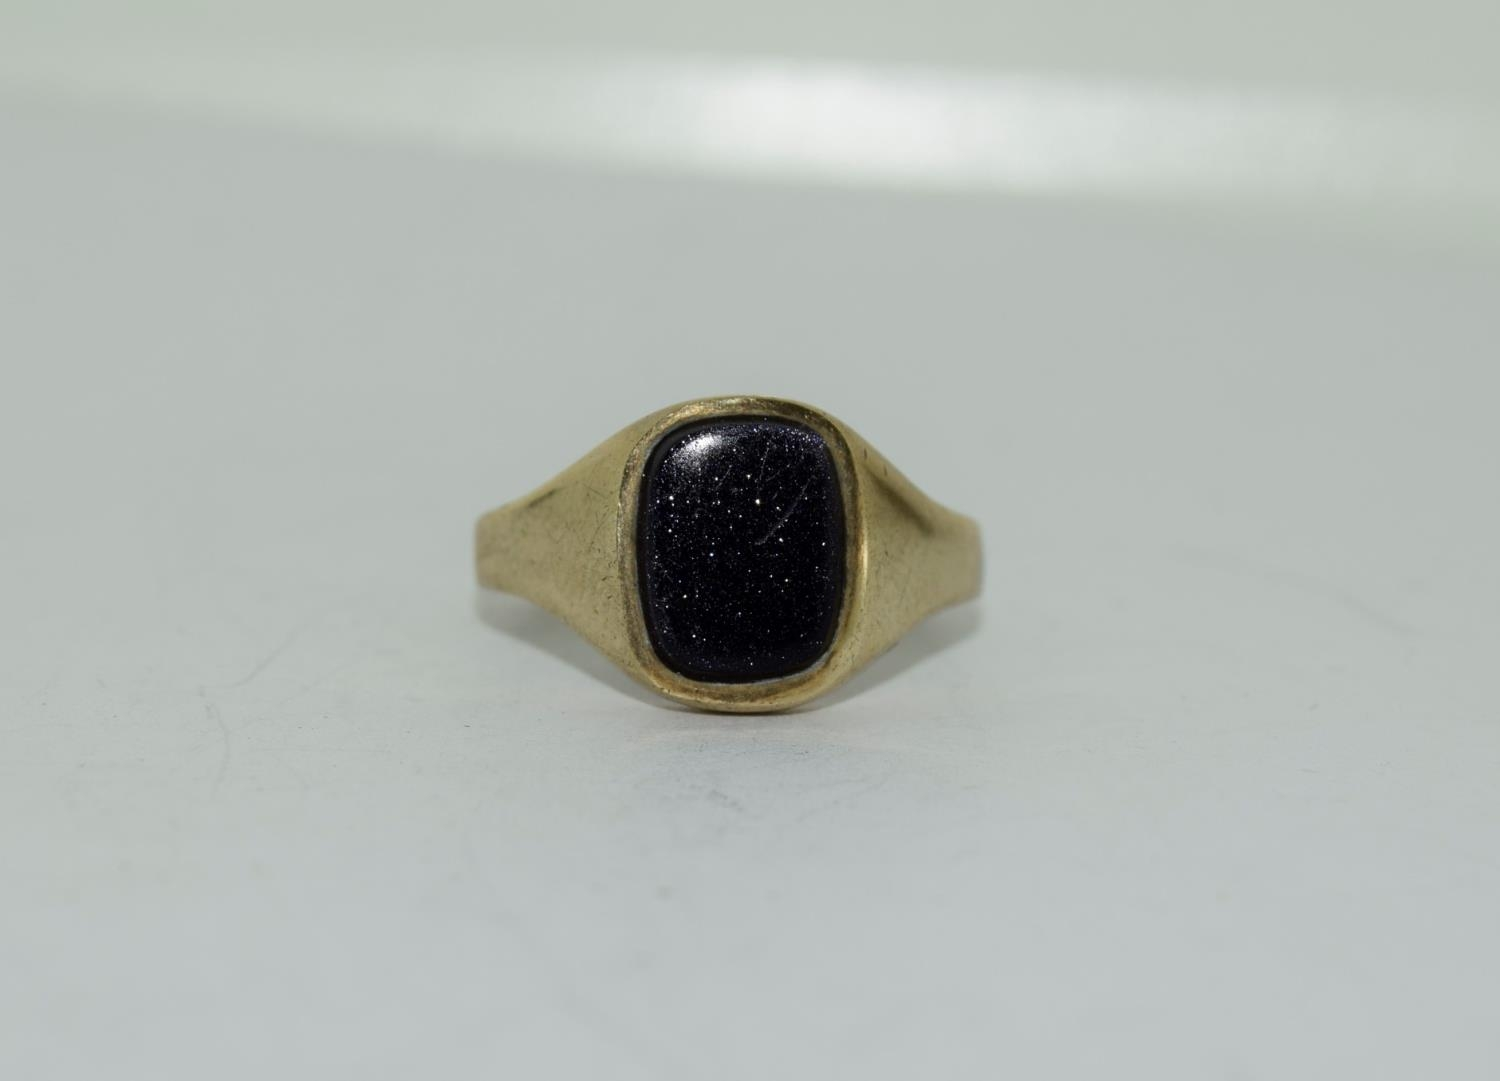 9ct gold gents sygnet ring set with unpolished amethyst centre stone size Q - Image 12 of 12